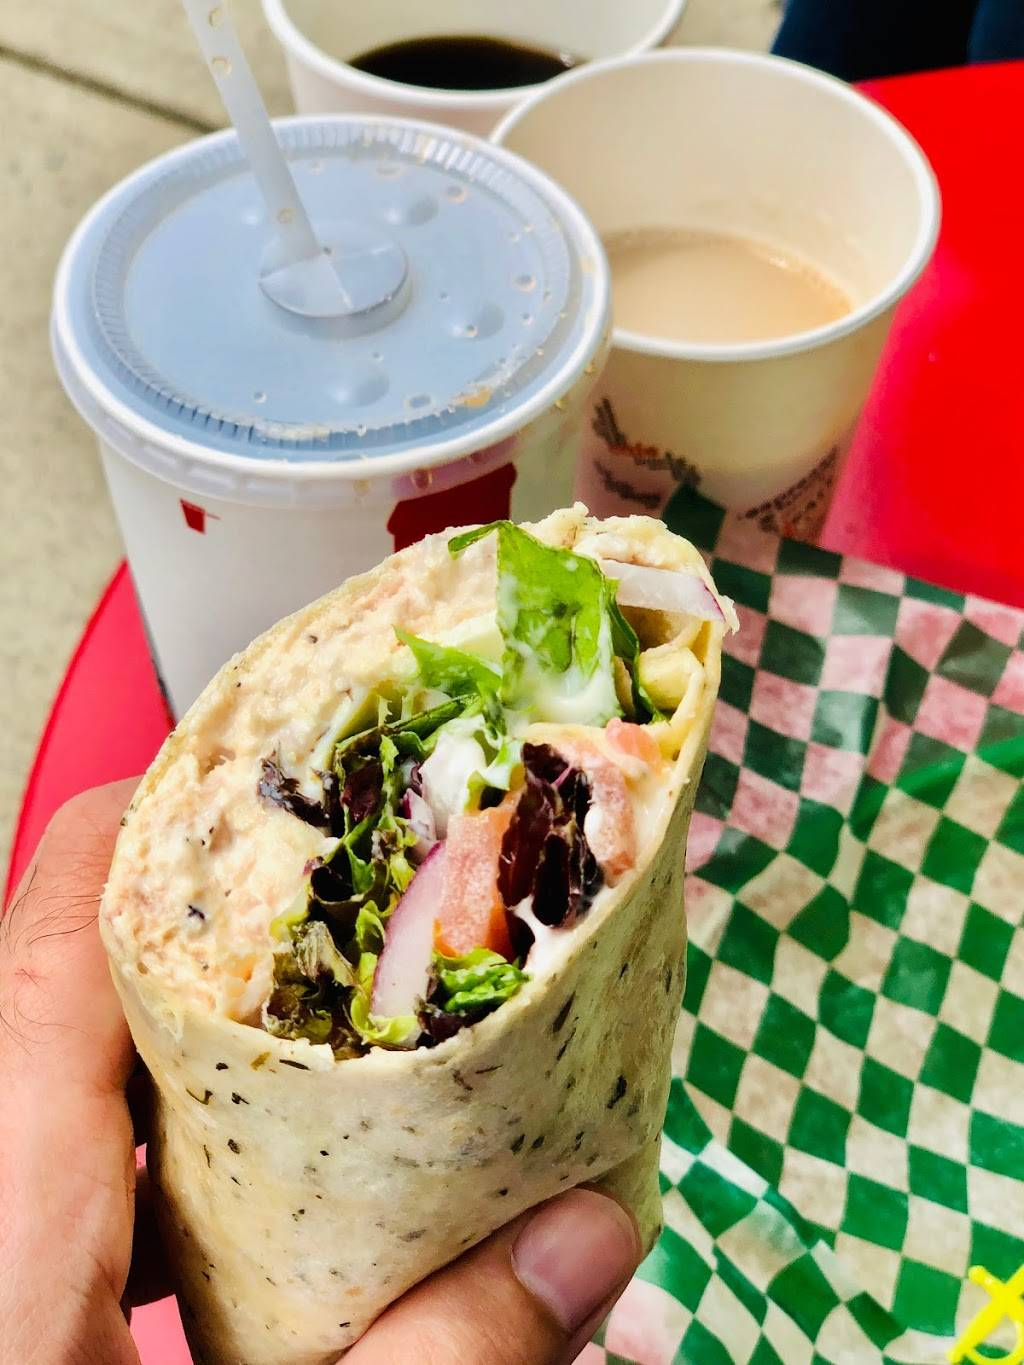 New England Wraps | restaurant | 62 Main St, Lee, MA 01238, USA | 4133944081 OR +1 413-394-4081